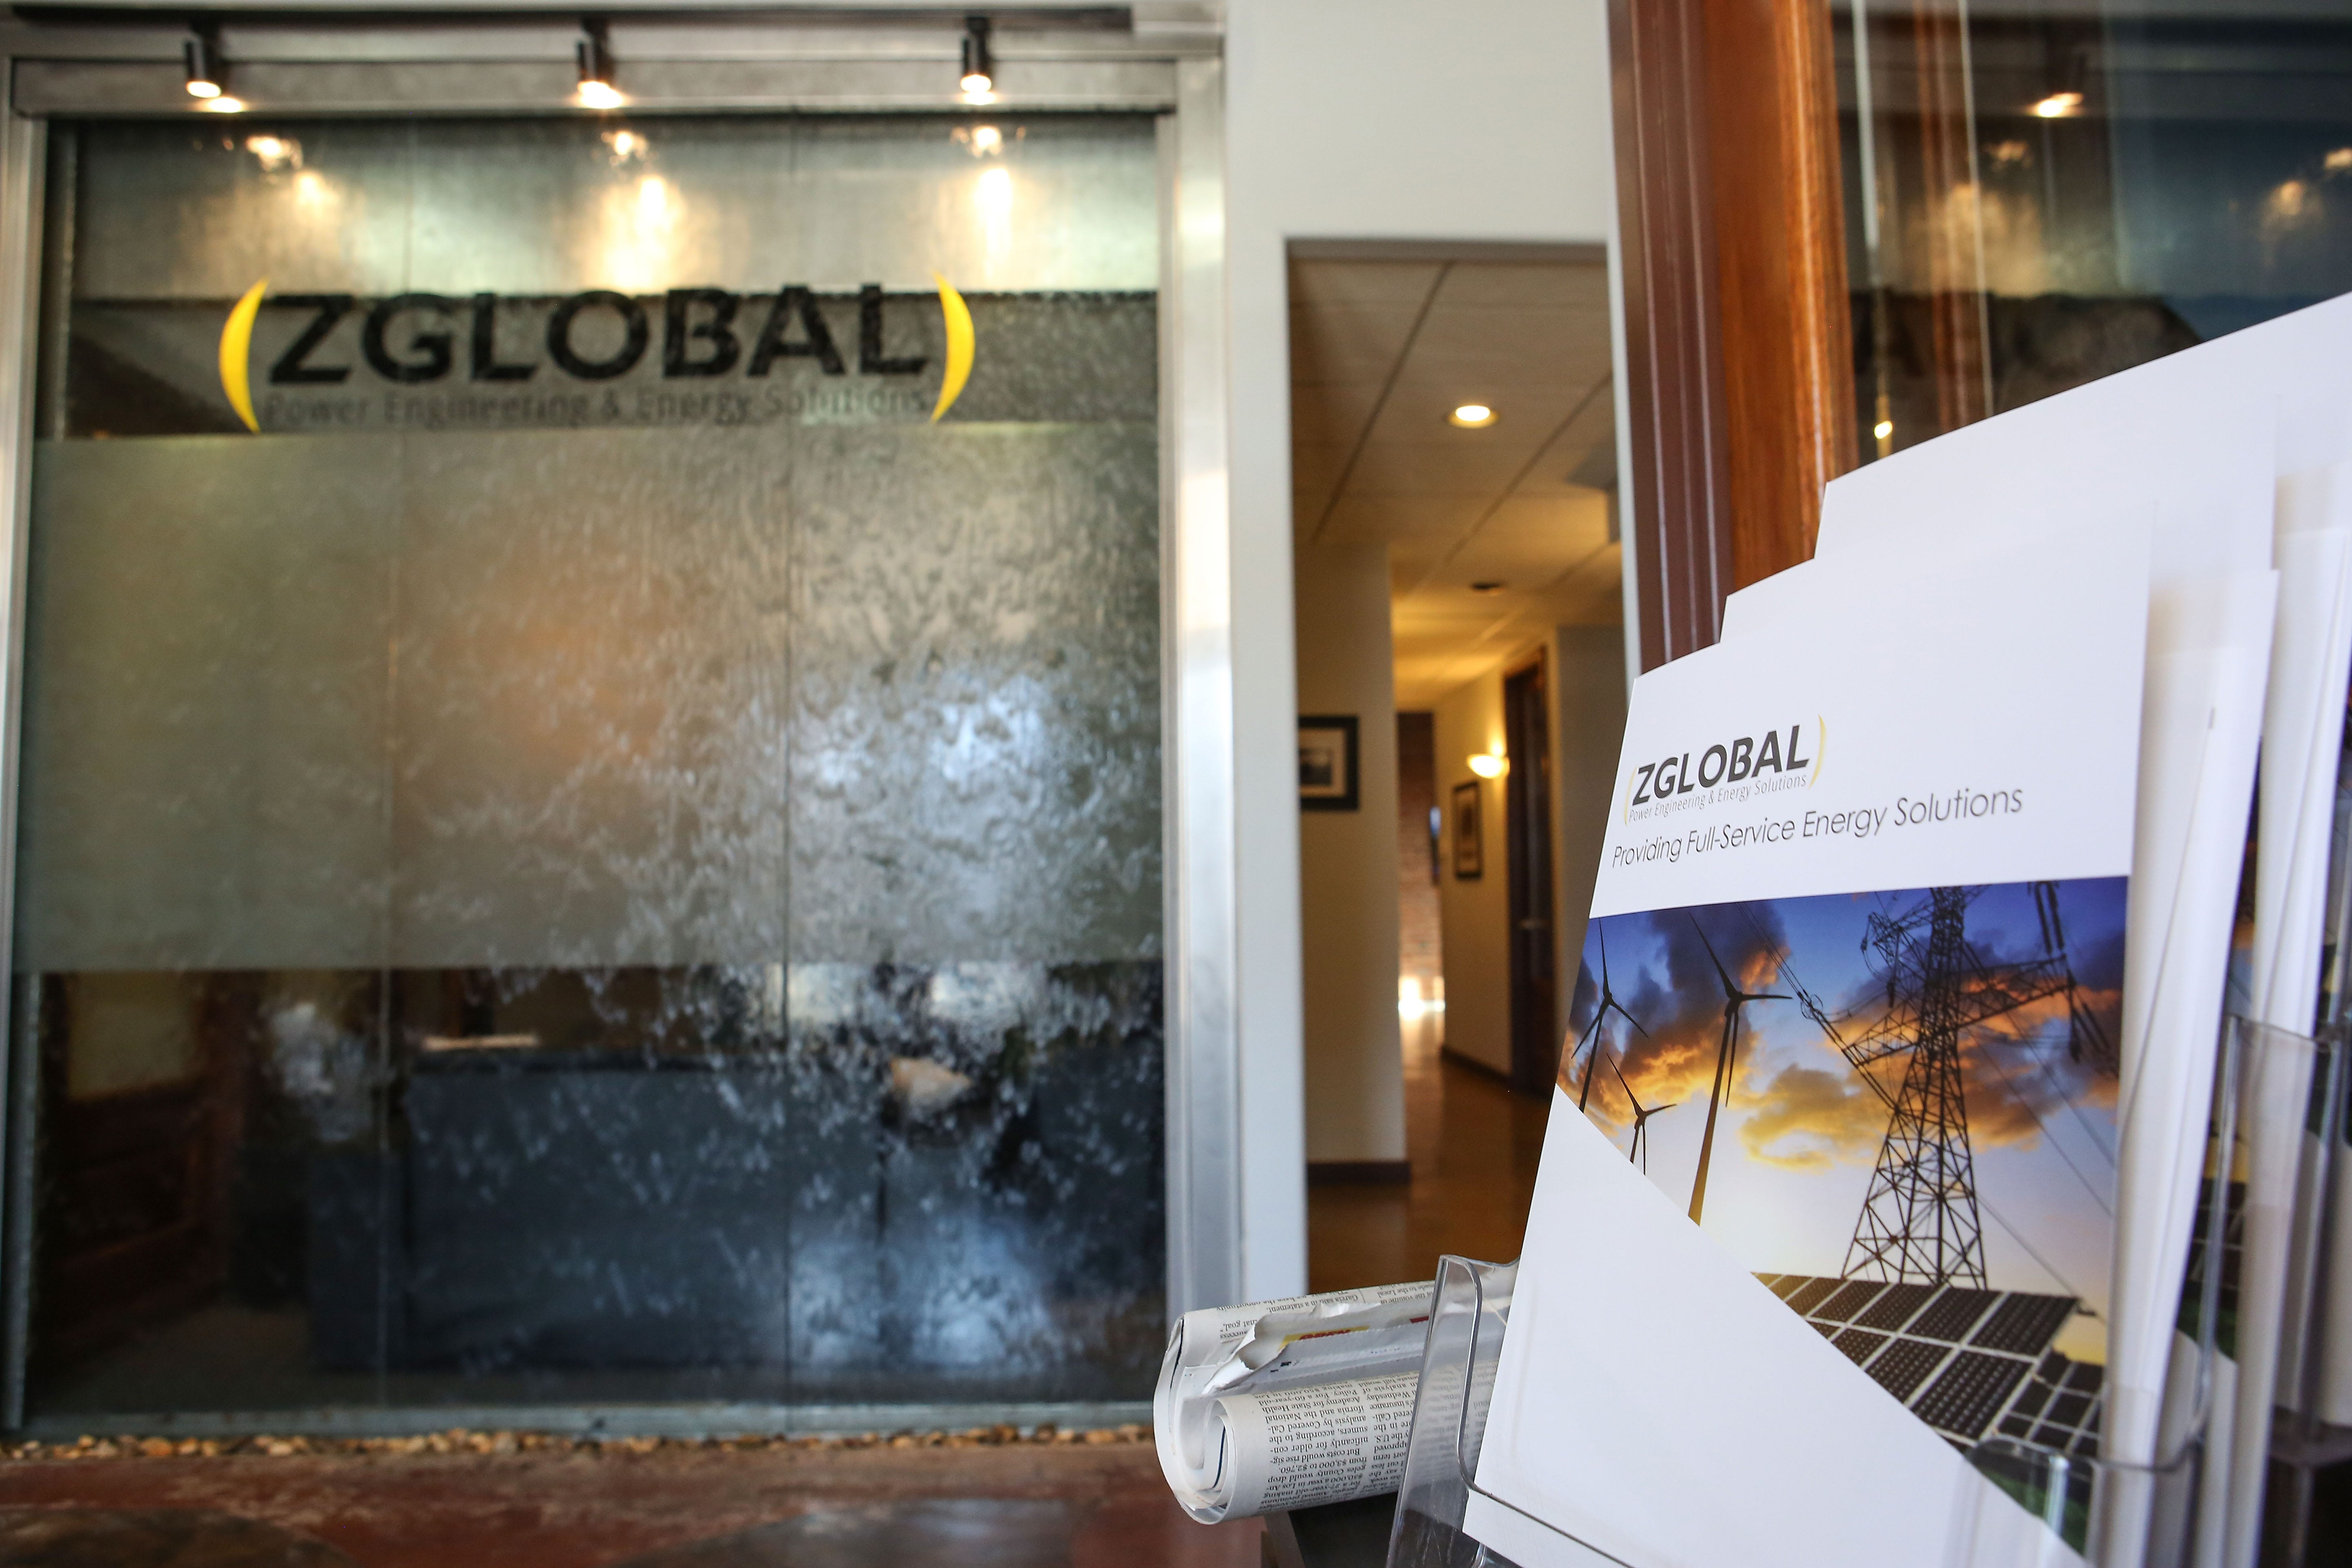 A waterfall flows in the lobby of ZGlobal's office in El Centro, California.